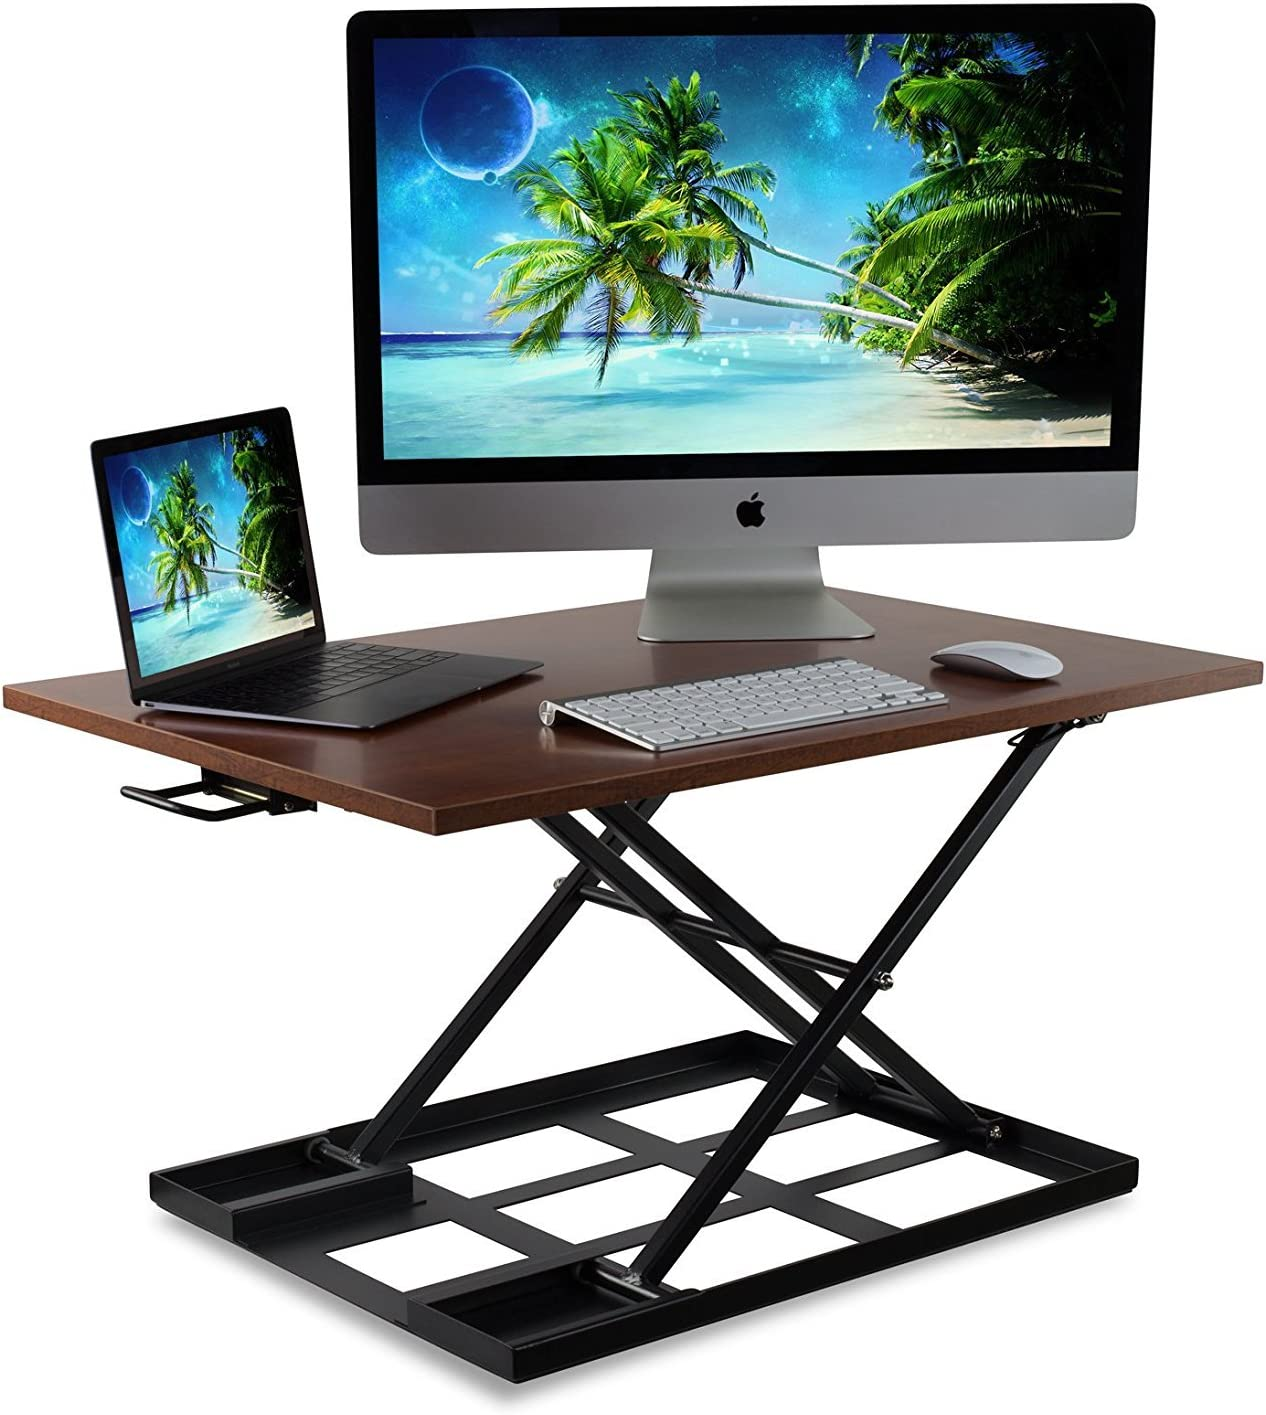 Standing Desk Ergonomic Height Adjustable Sit Stand Desk Brown Mount-It Holds up to 20 Pounds 32x22 Inch Preassembled Stand-Up Desk Converter Large Surface